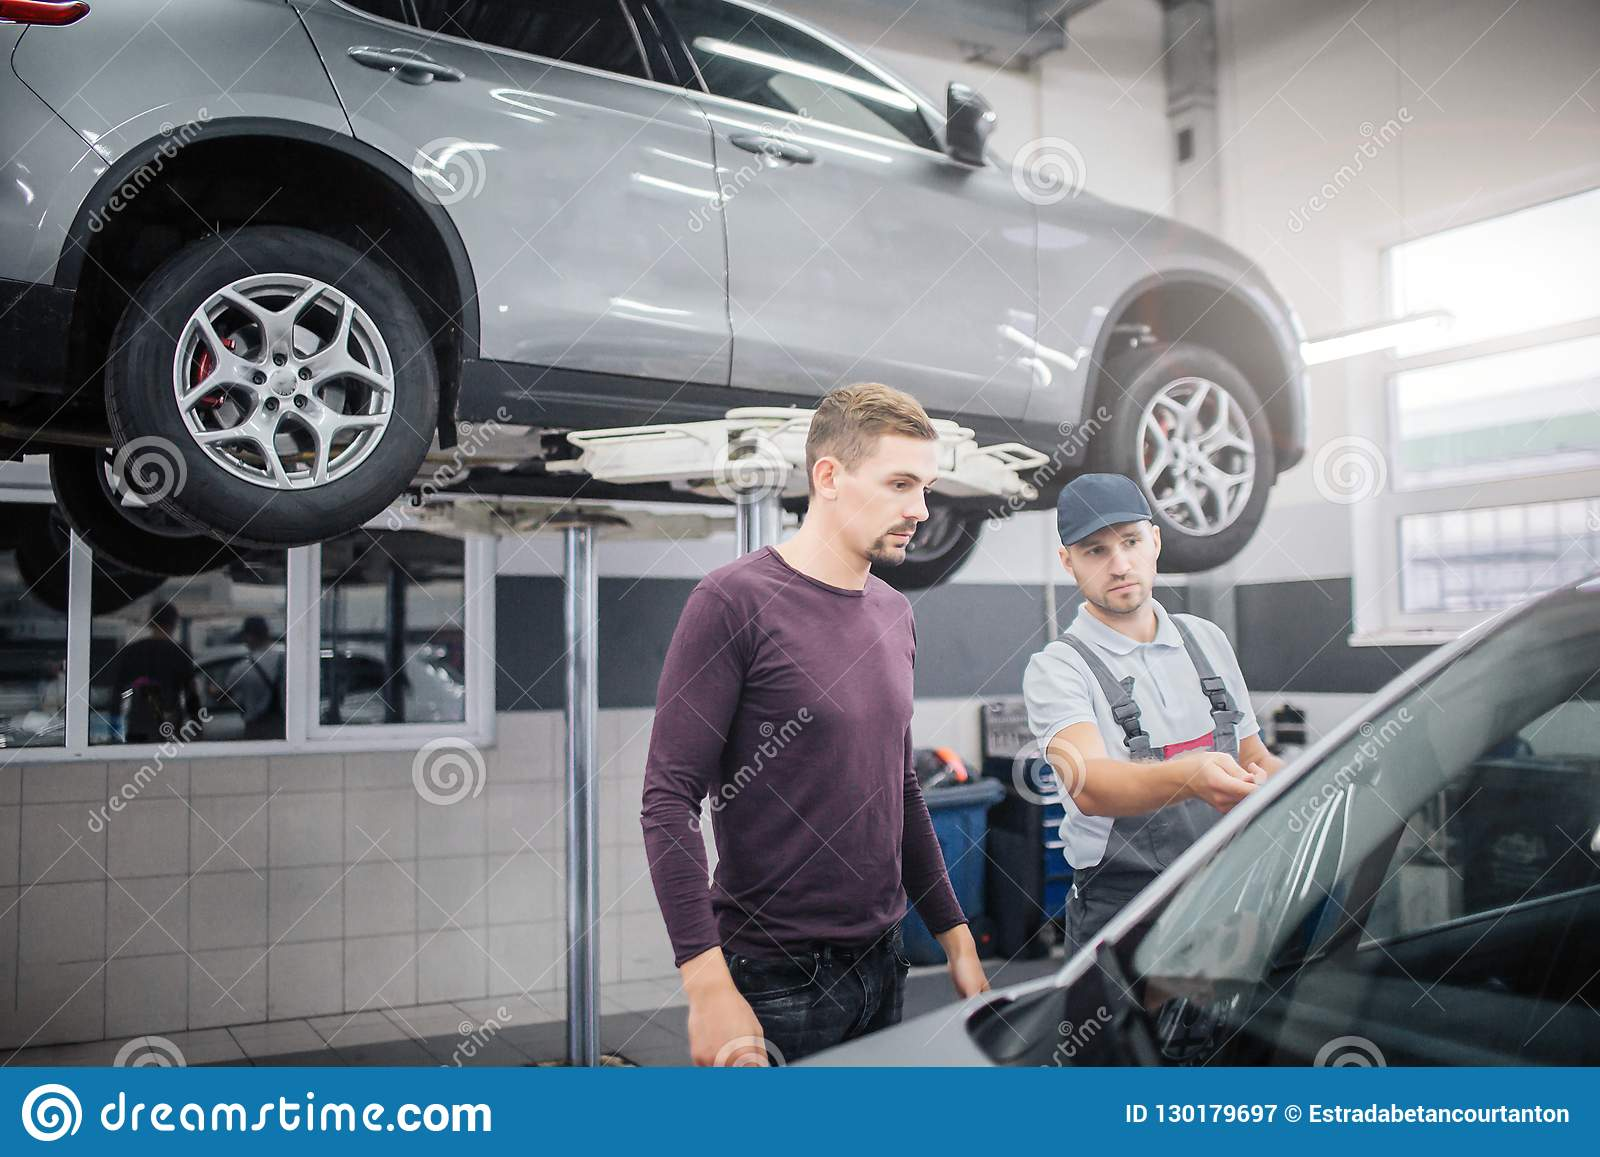 Two young men stand in garage at car. Worker points on automobile. Owner looks at it. They are serious and concentrated